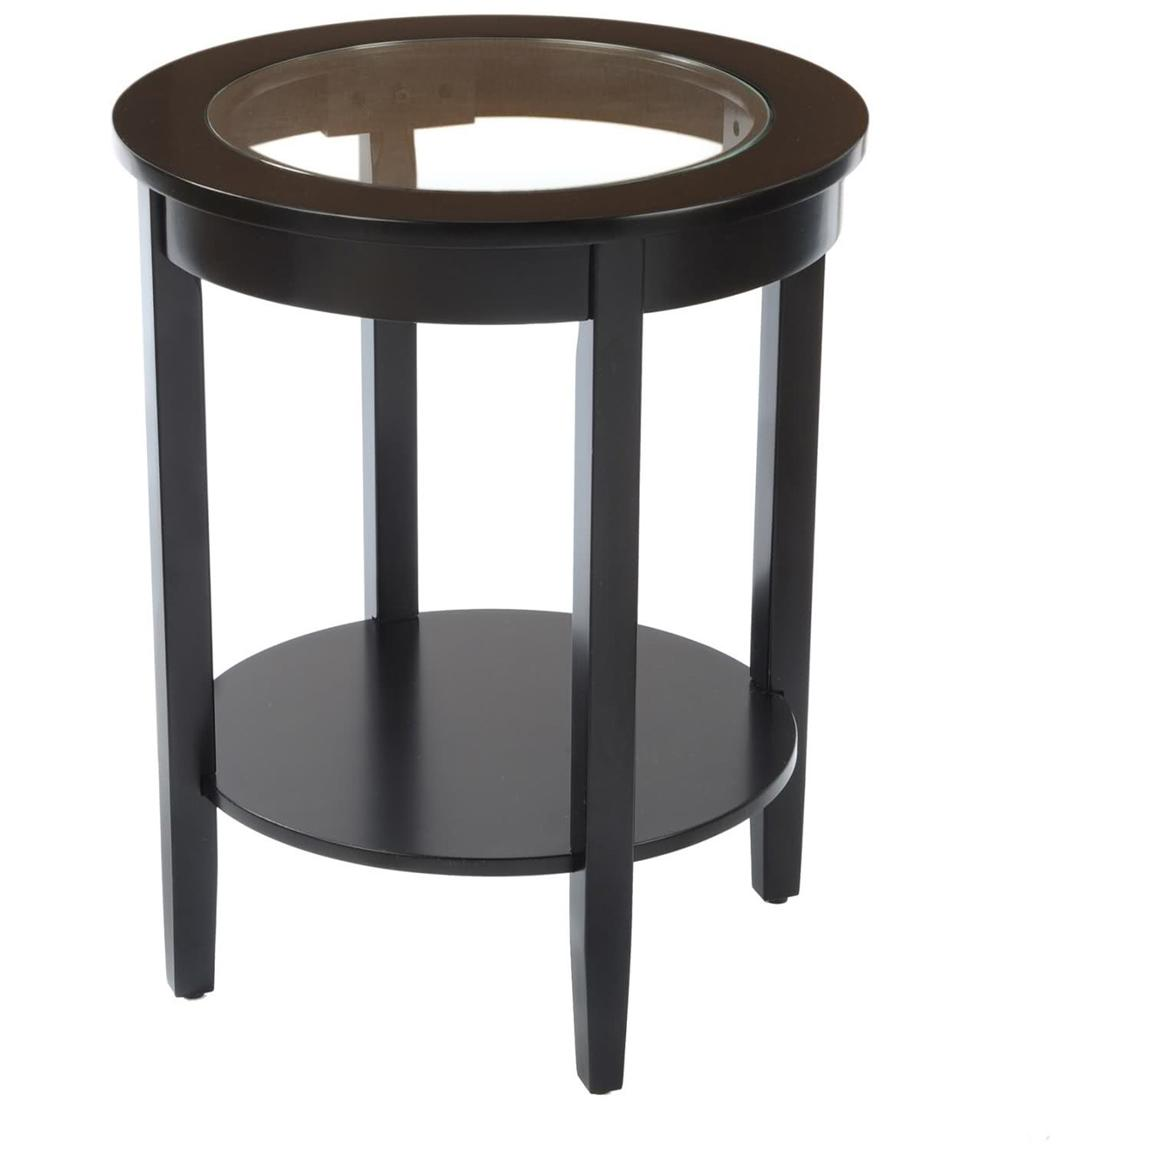 round side table with glass top living room furniture accent drawer black nautical swag light dark brown bedside cabinet square market umbrella marble stone coffee outdoor lounge